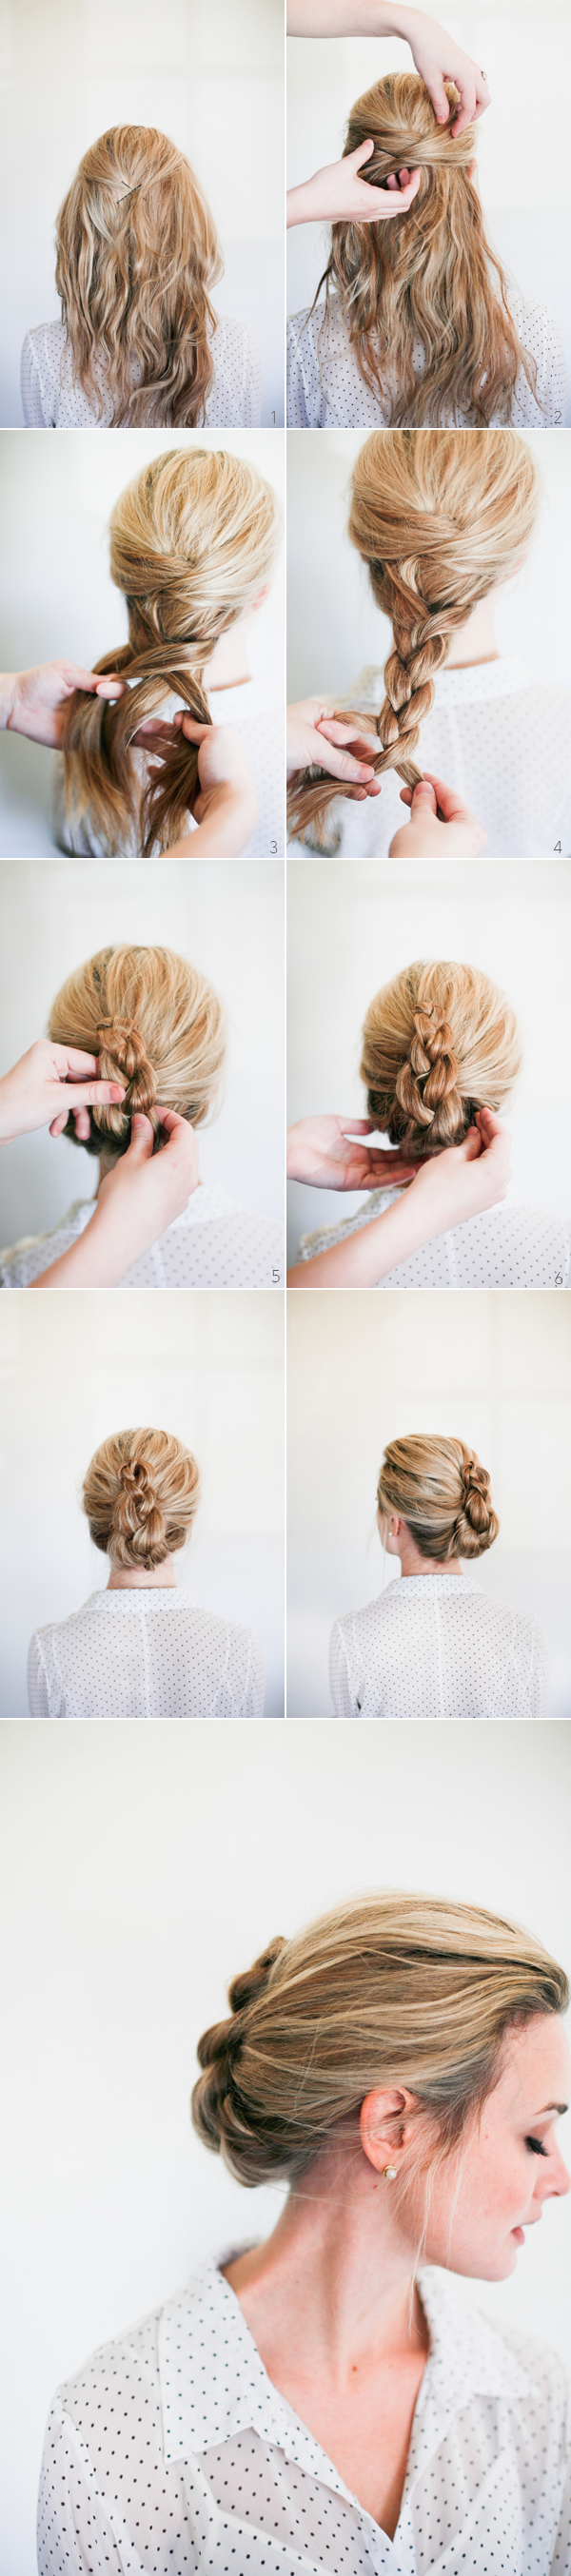 braided-french-twist-wedding-hairstyles-for-long-hair